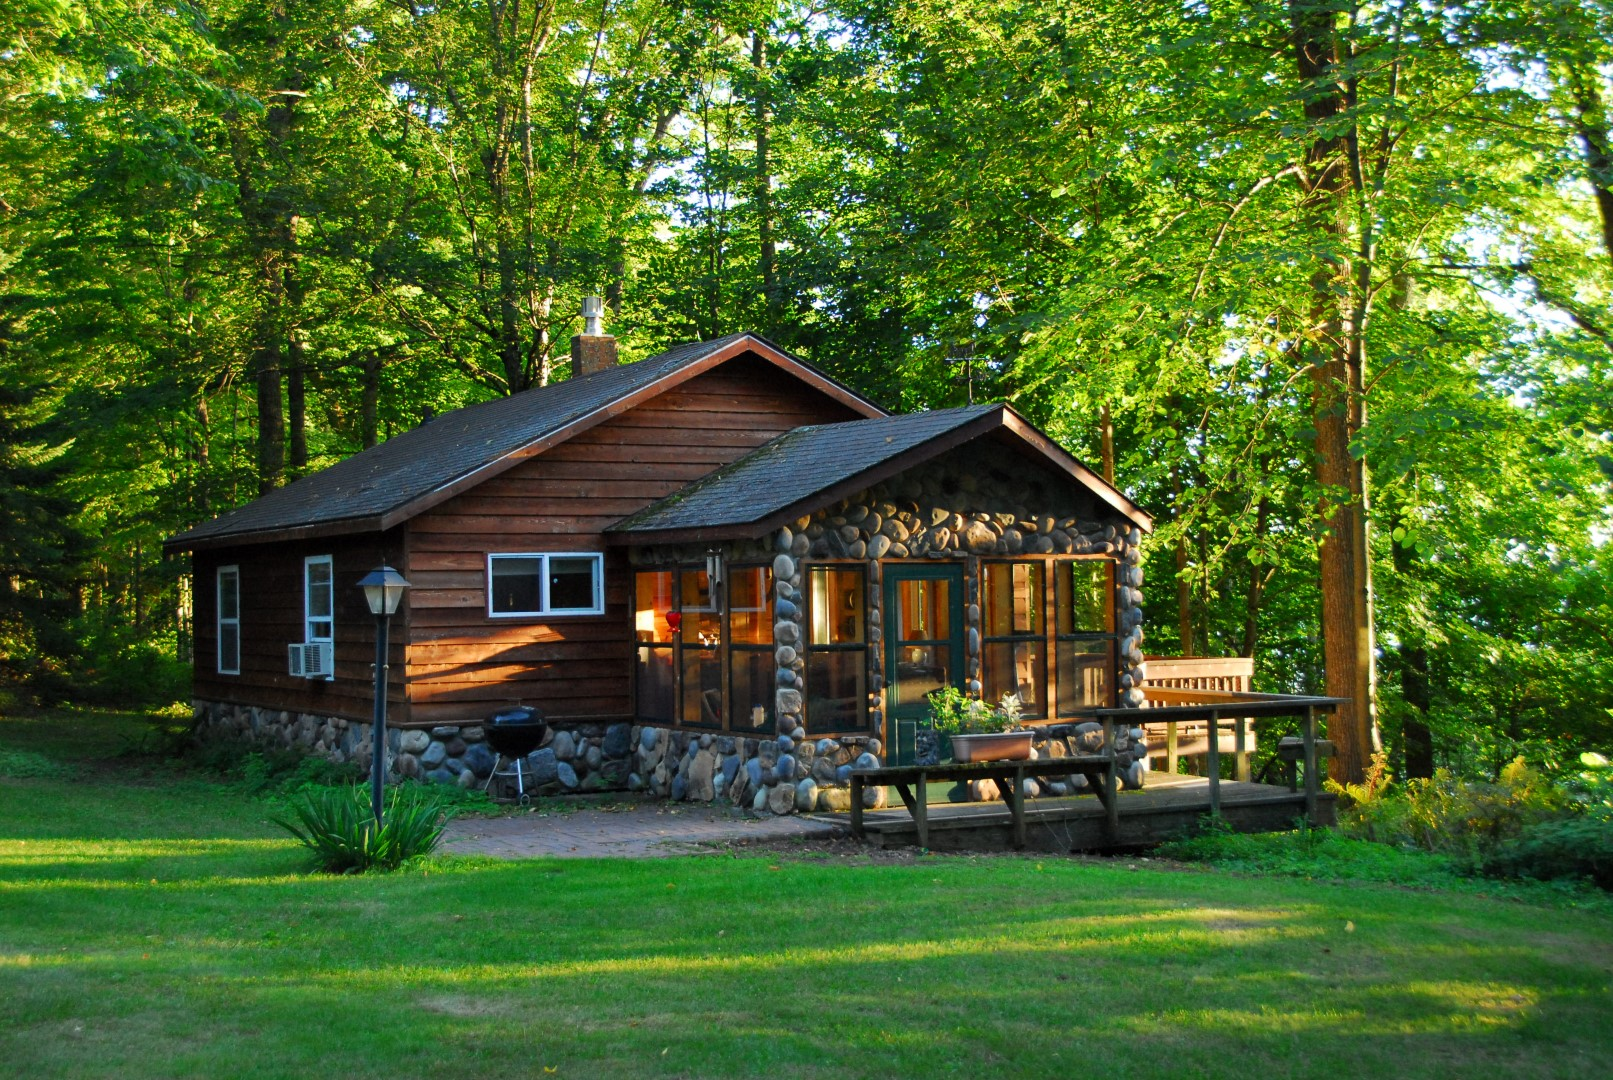 2010-08-26 Cabin number 3 in evening sun (9) (Large) - Copy